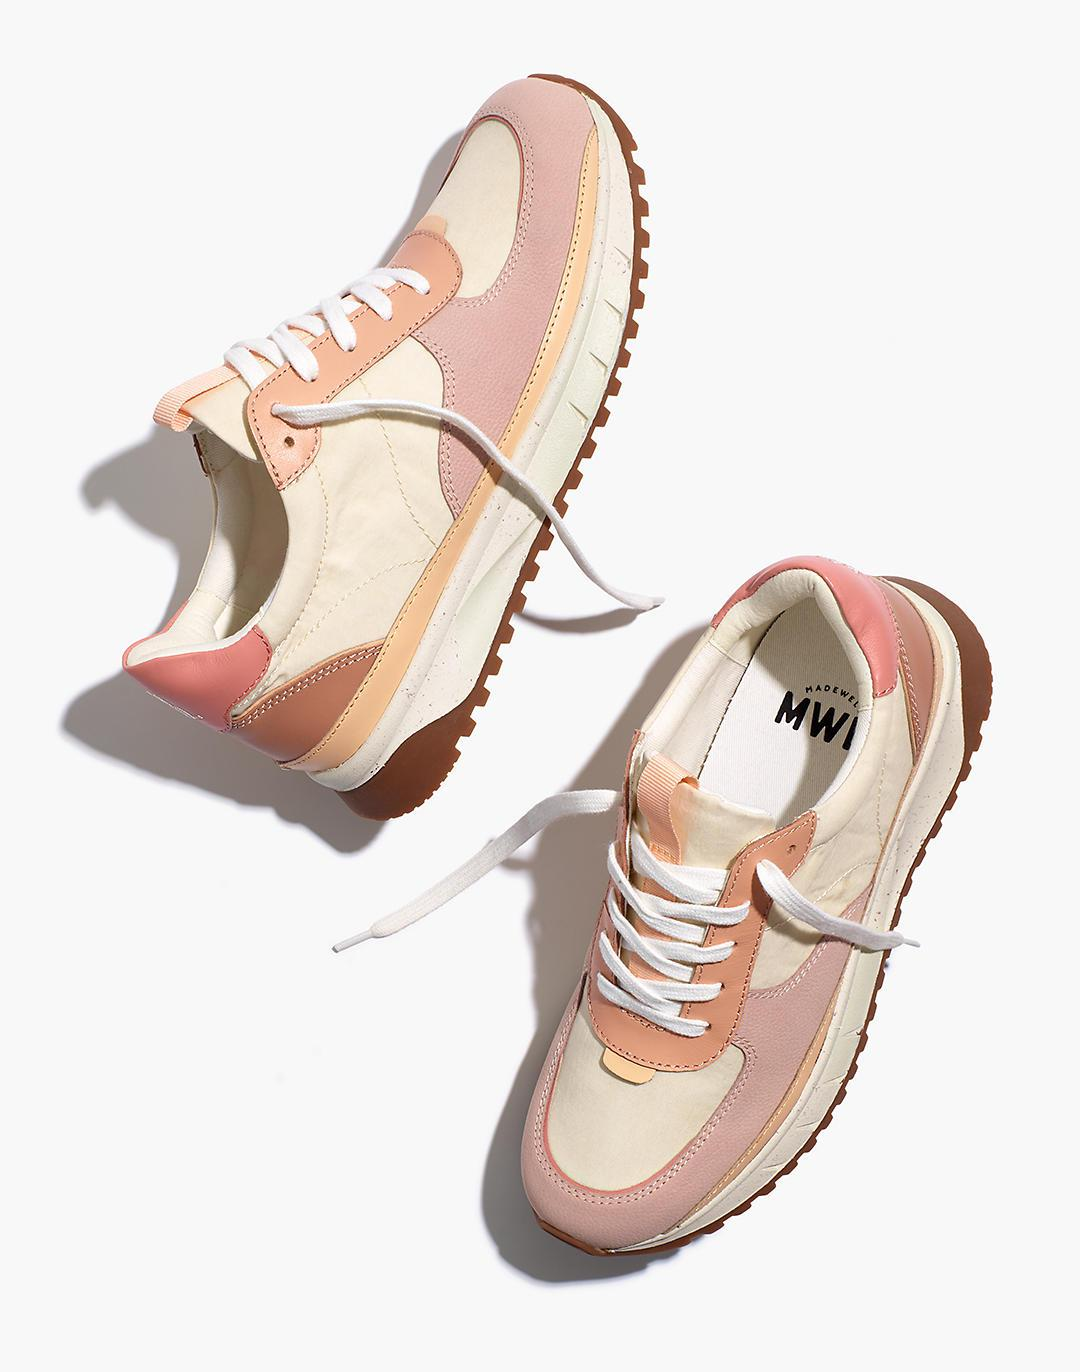 Kickoff Trainer Sneakers in Washed Nylon and Leather